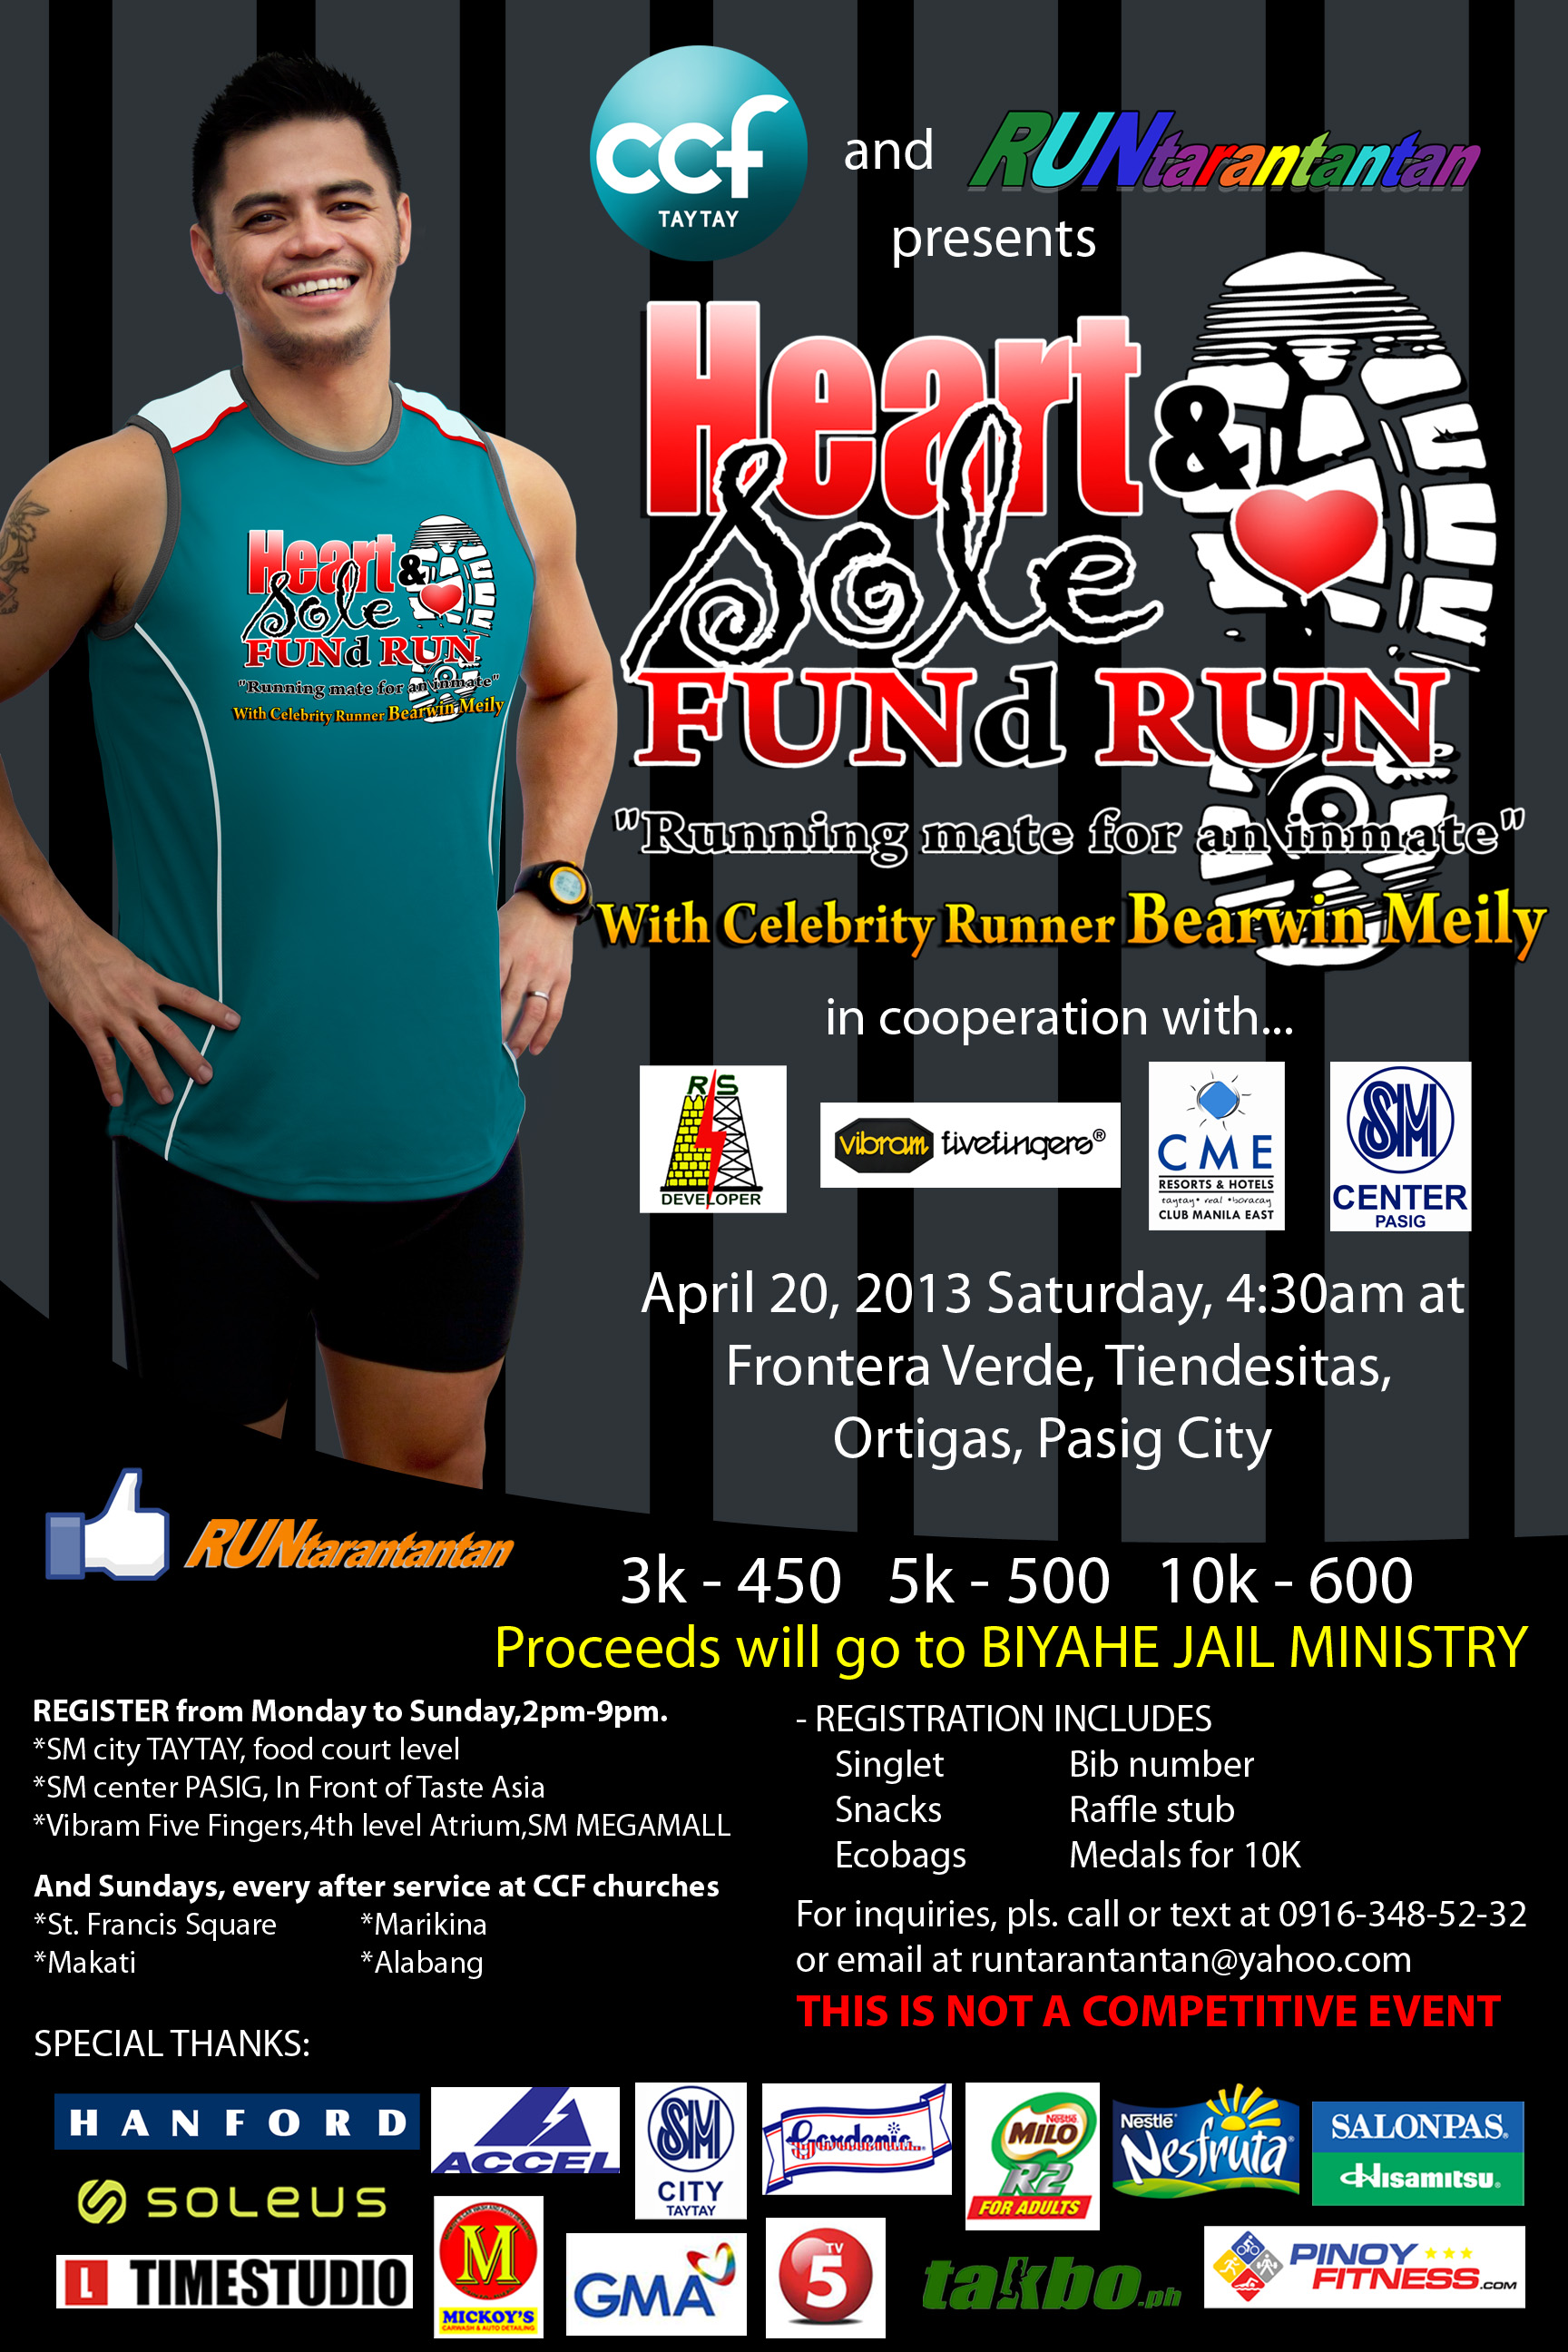 heart-and-sole-fund-run-2013-poster